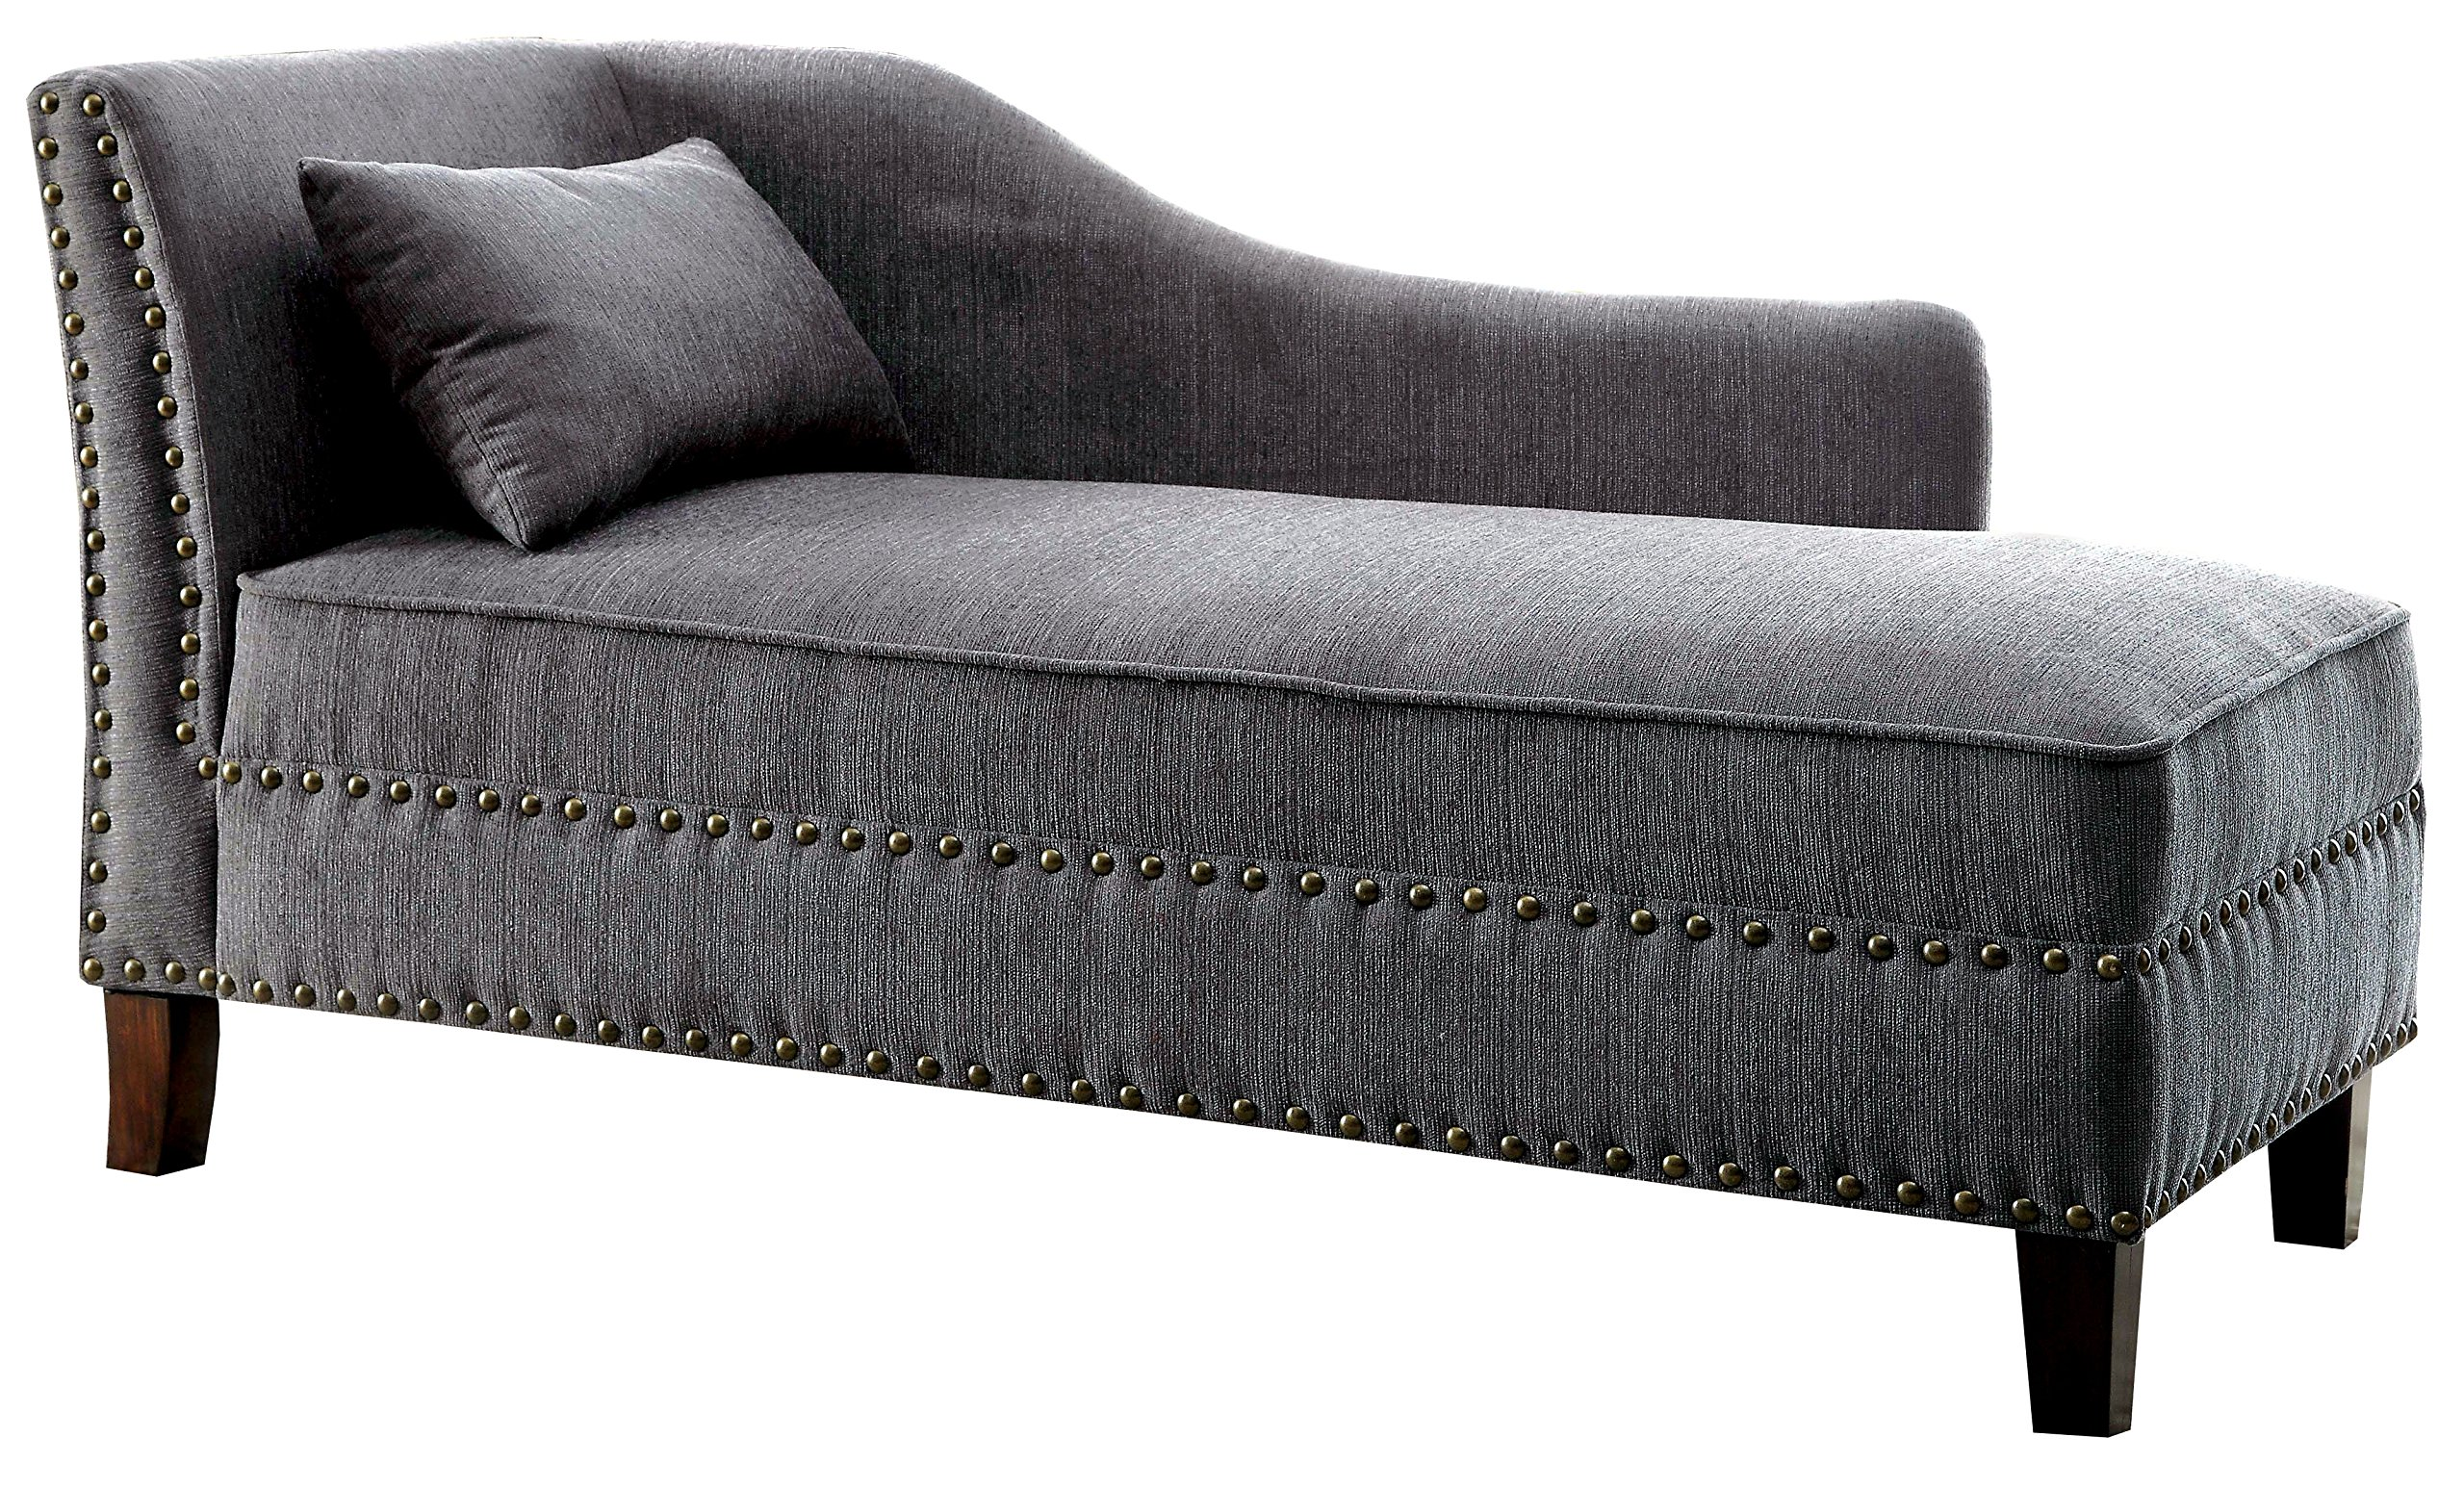 HOMES: Inside + Out Laura Contemporary Chaise Lounger Gray by HOMES: Inside + Out